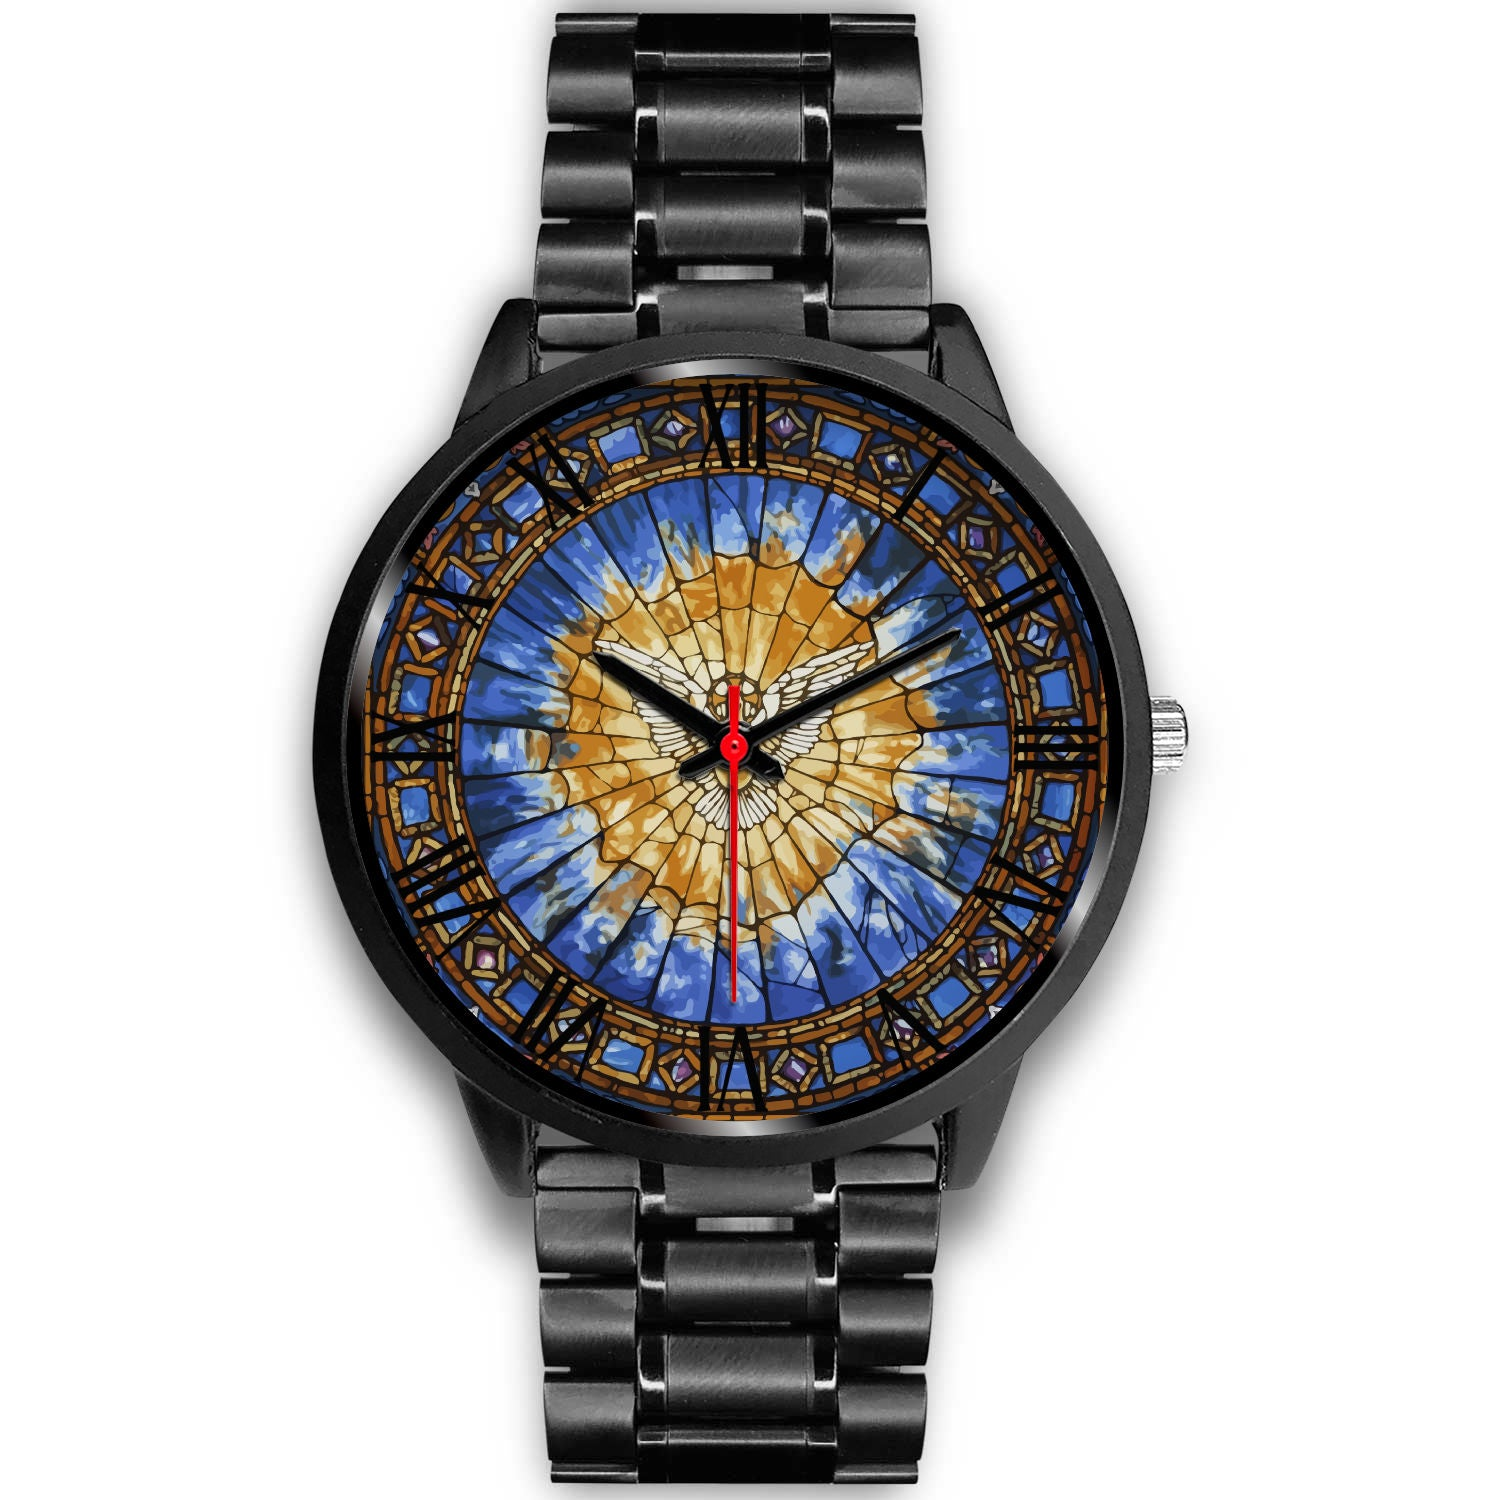 VIRA Awesome Black Stainless Steel Watch For Jesus Lovers